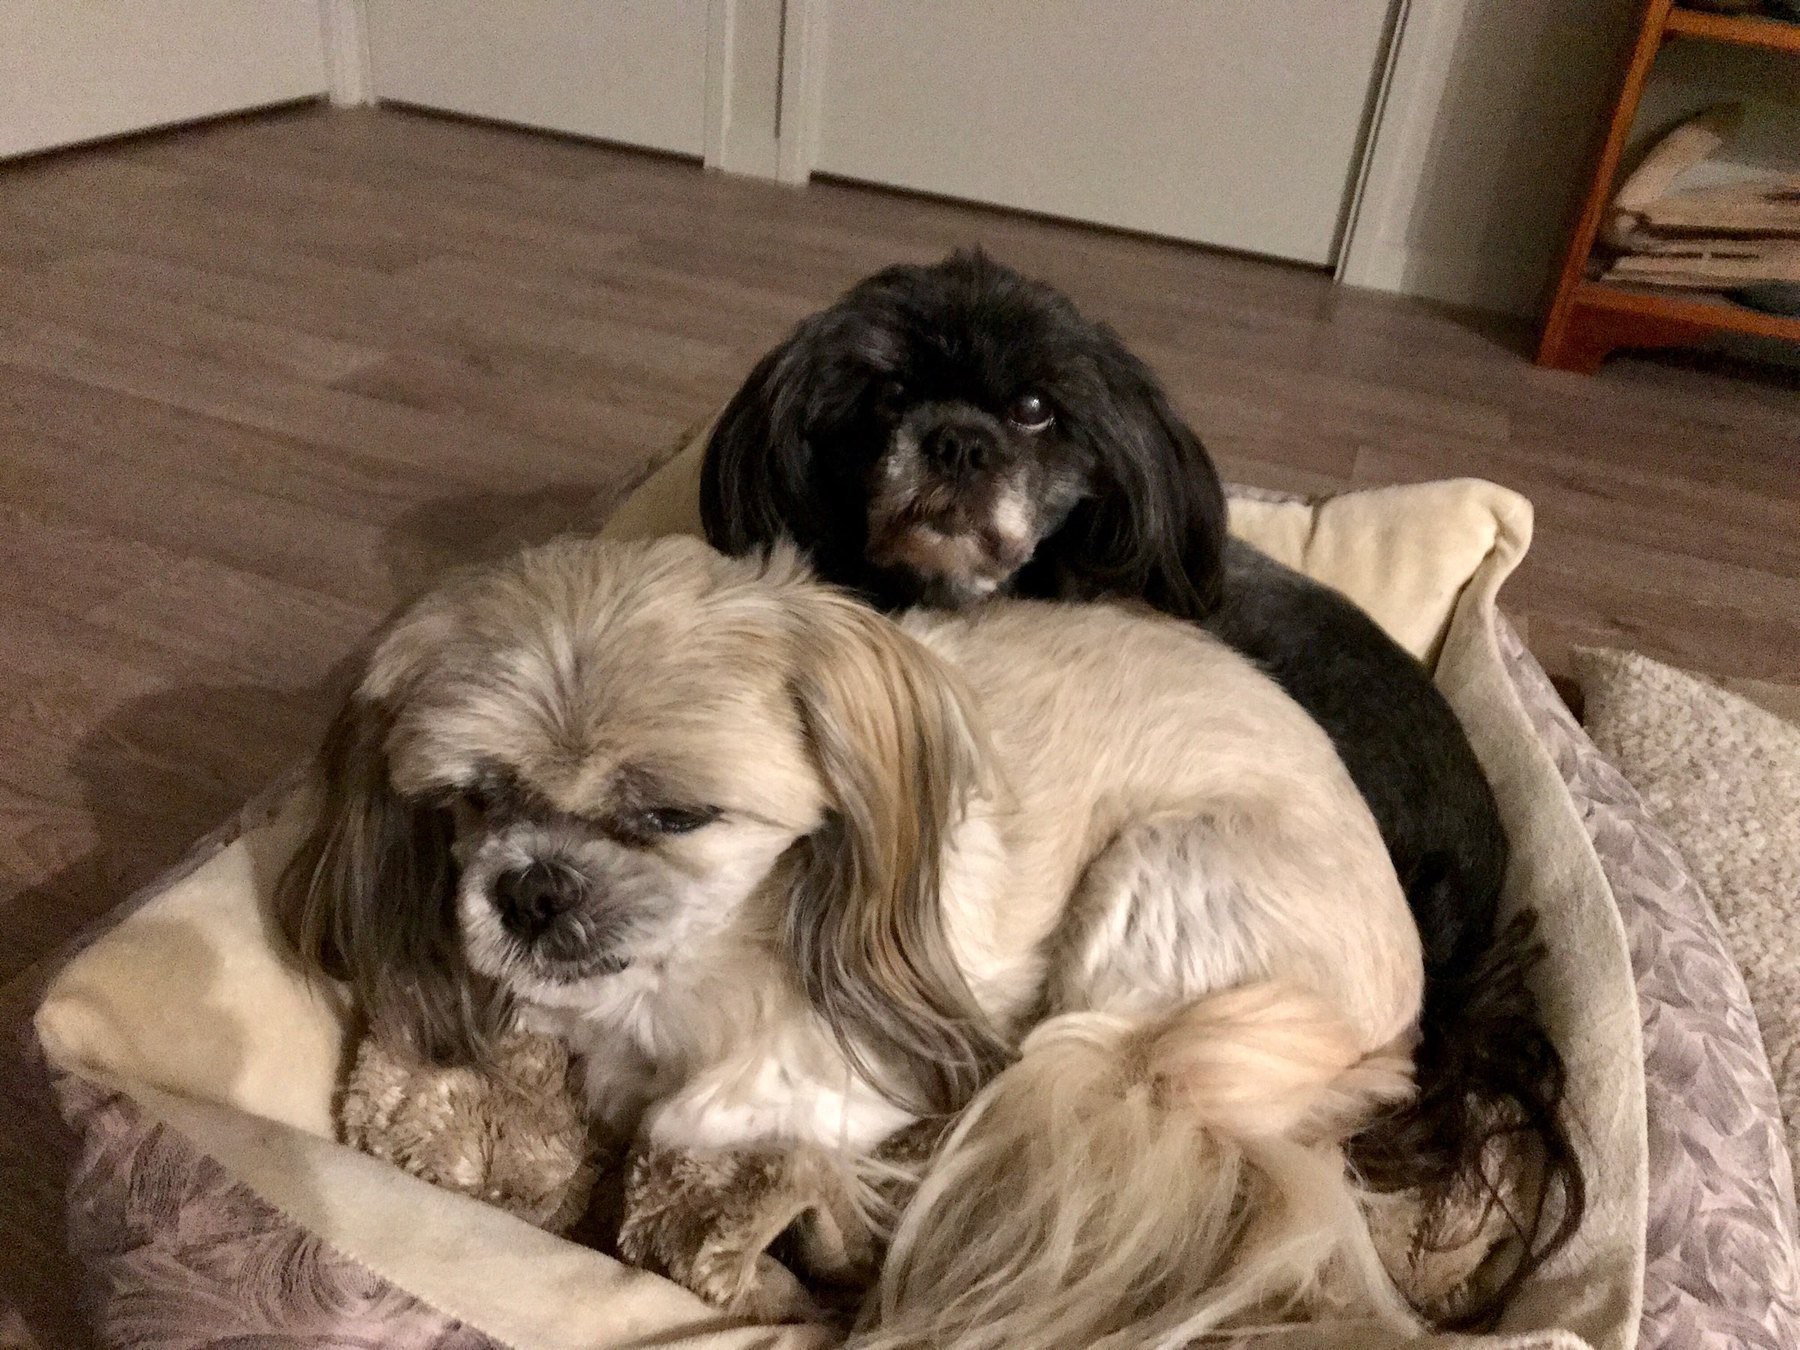 Two small dogs cuddled together in a bed.